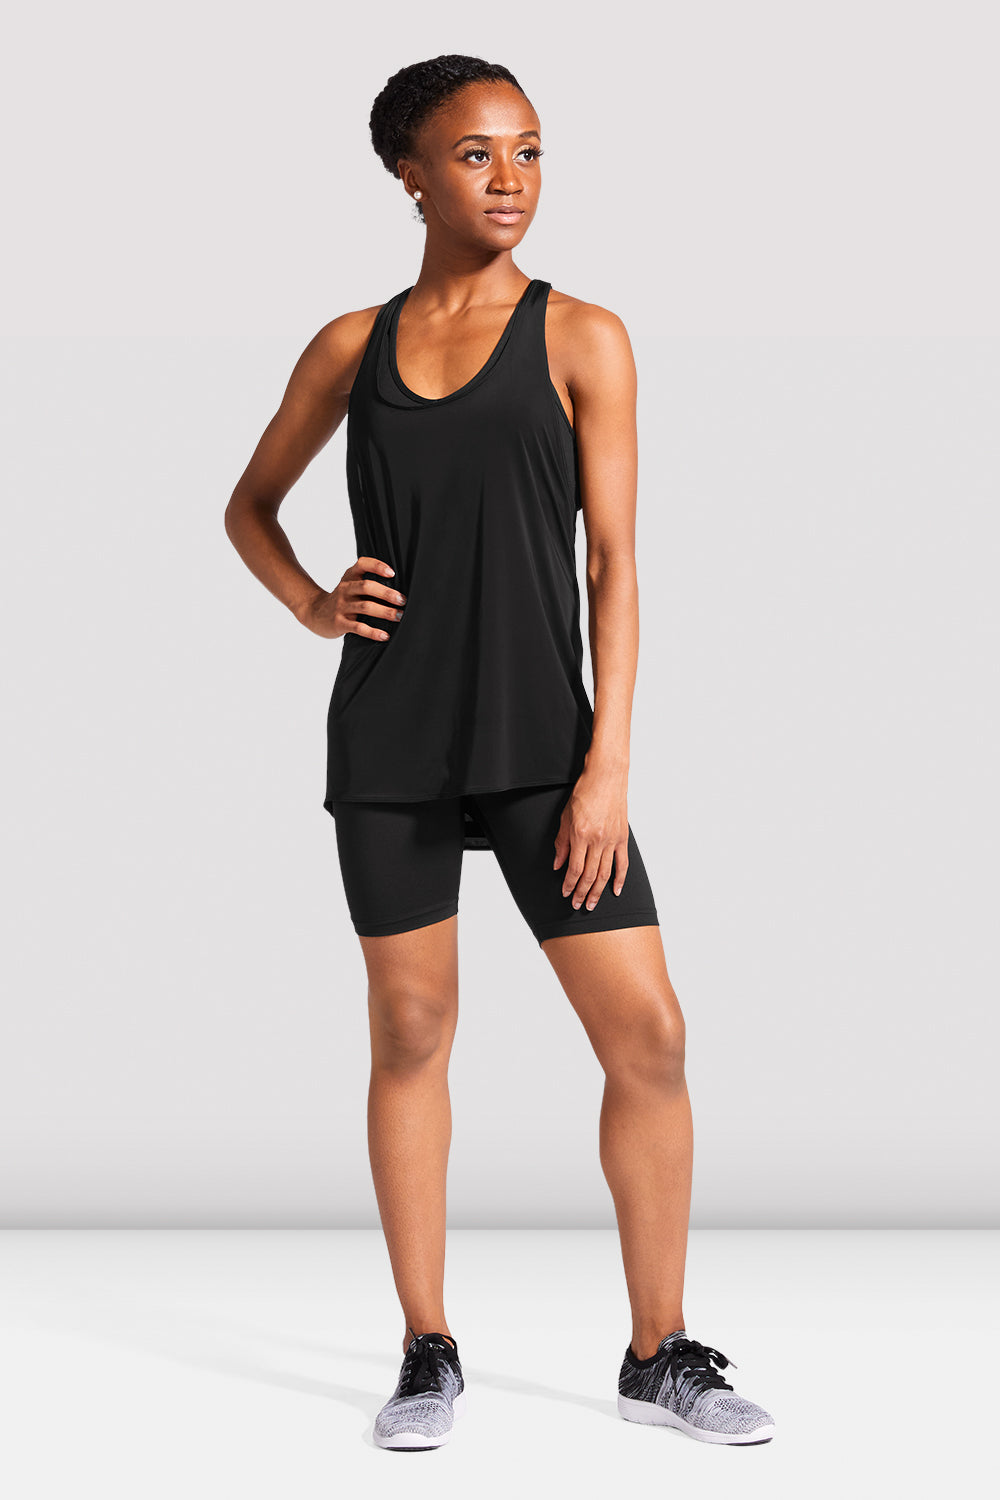 Ladies Bloch Logo Tank Top - BLOCH US